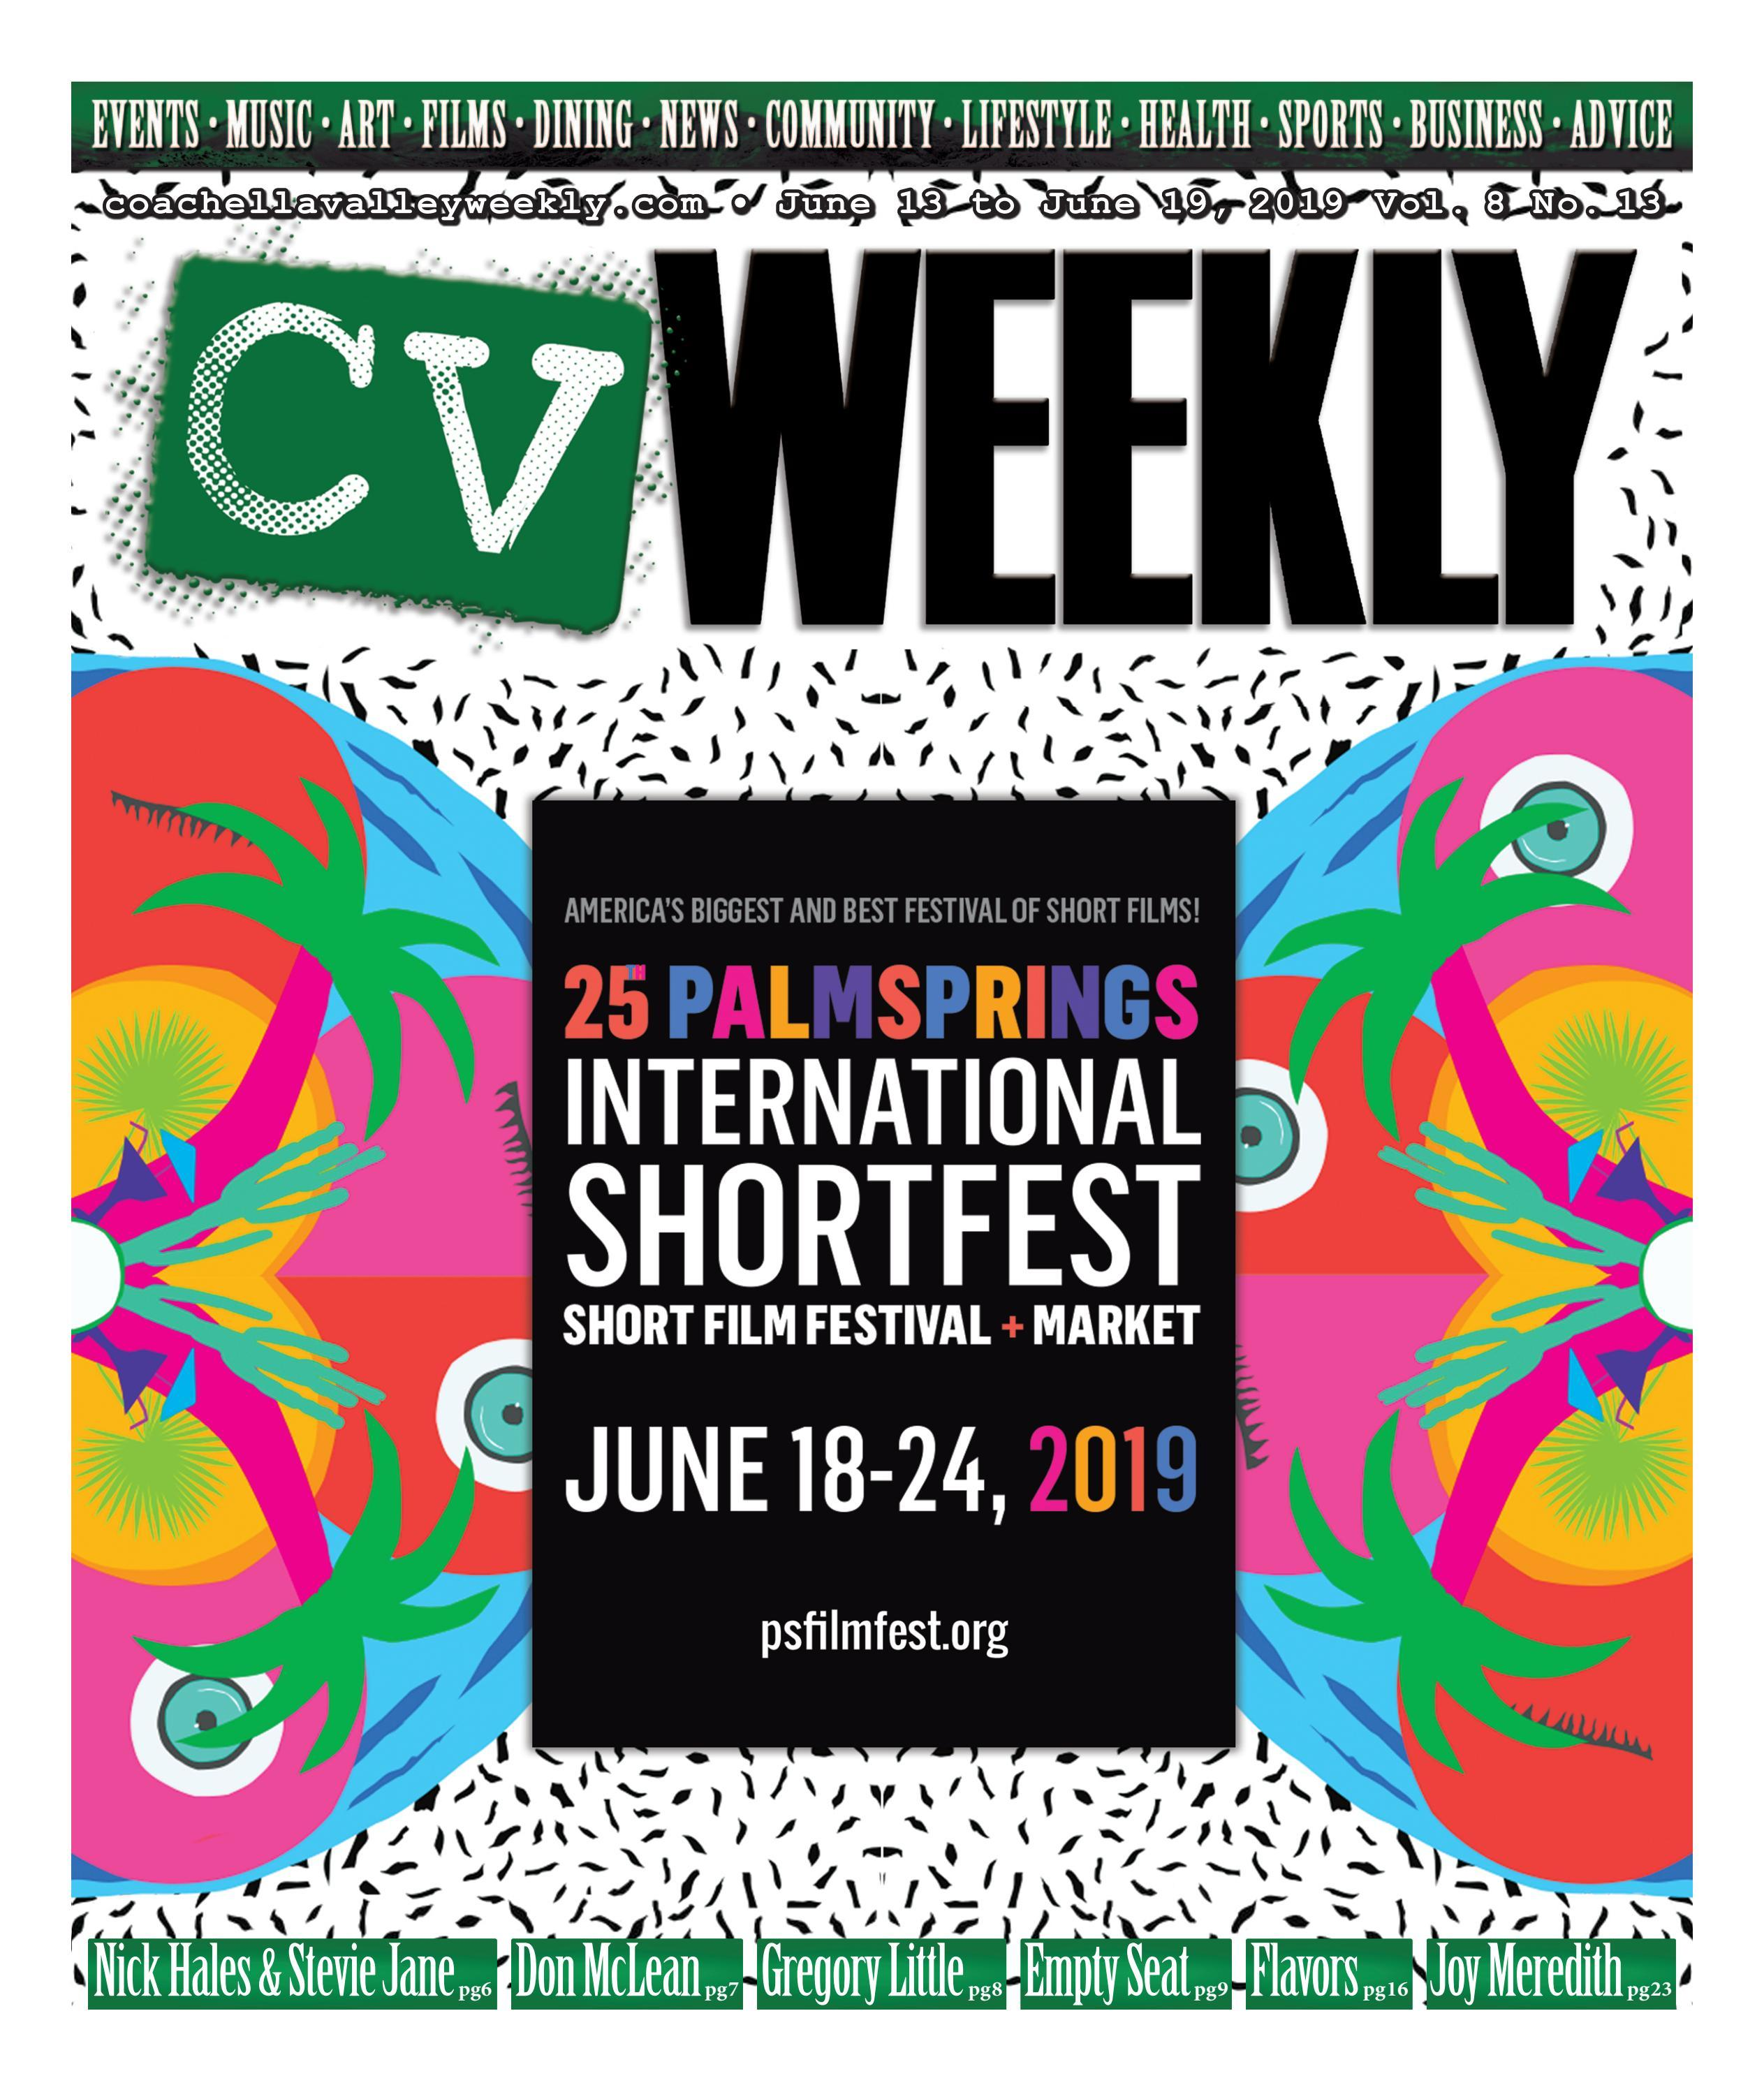 Coachella Valley Weekly - June 13 to June 19, 2019 Vol  8 No